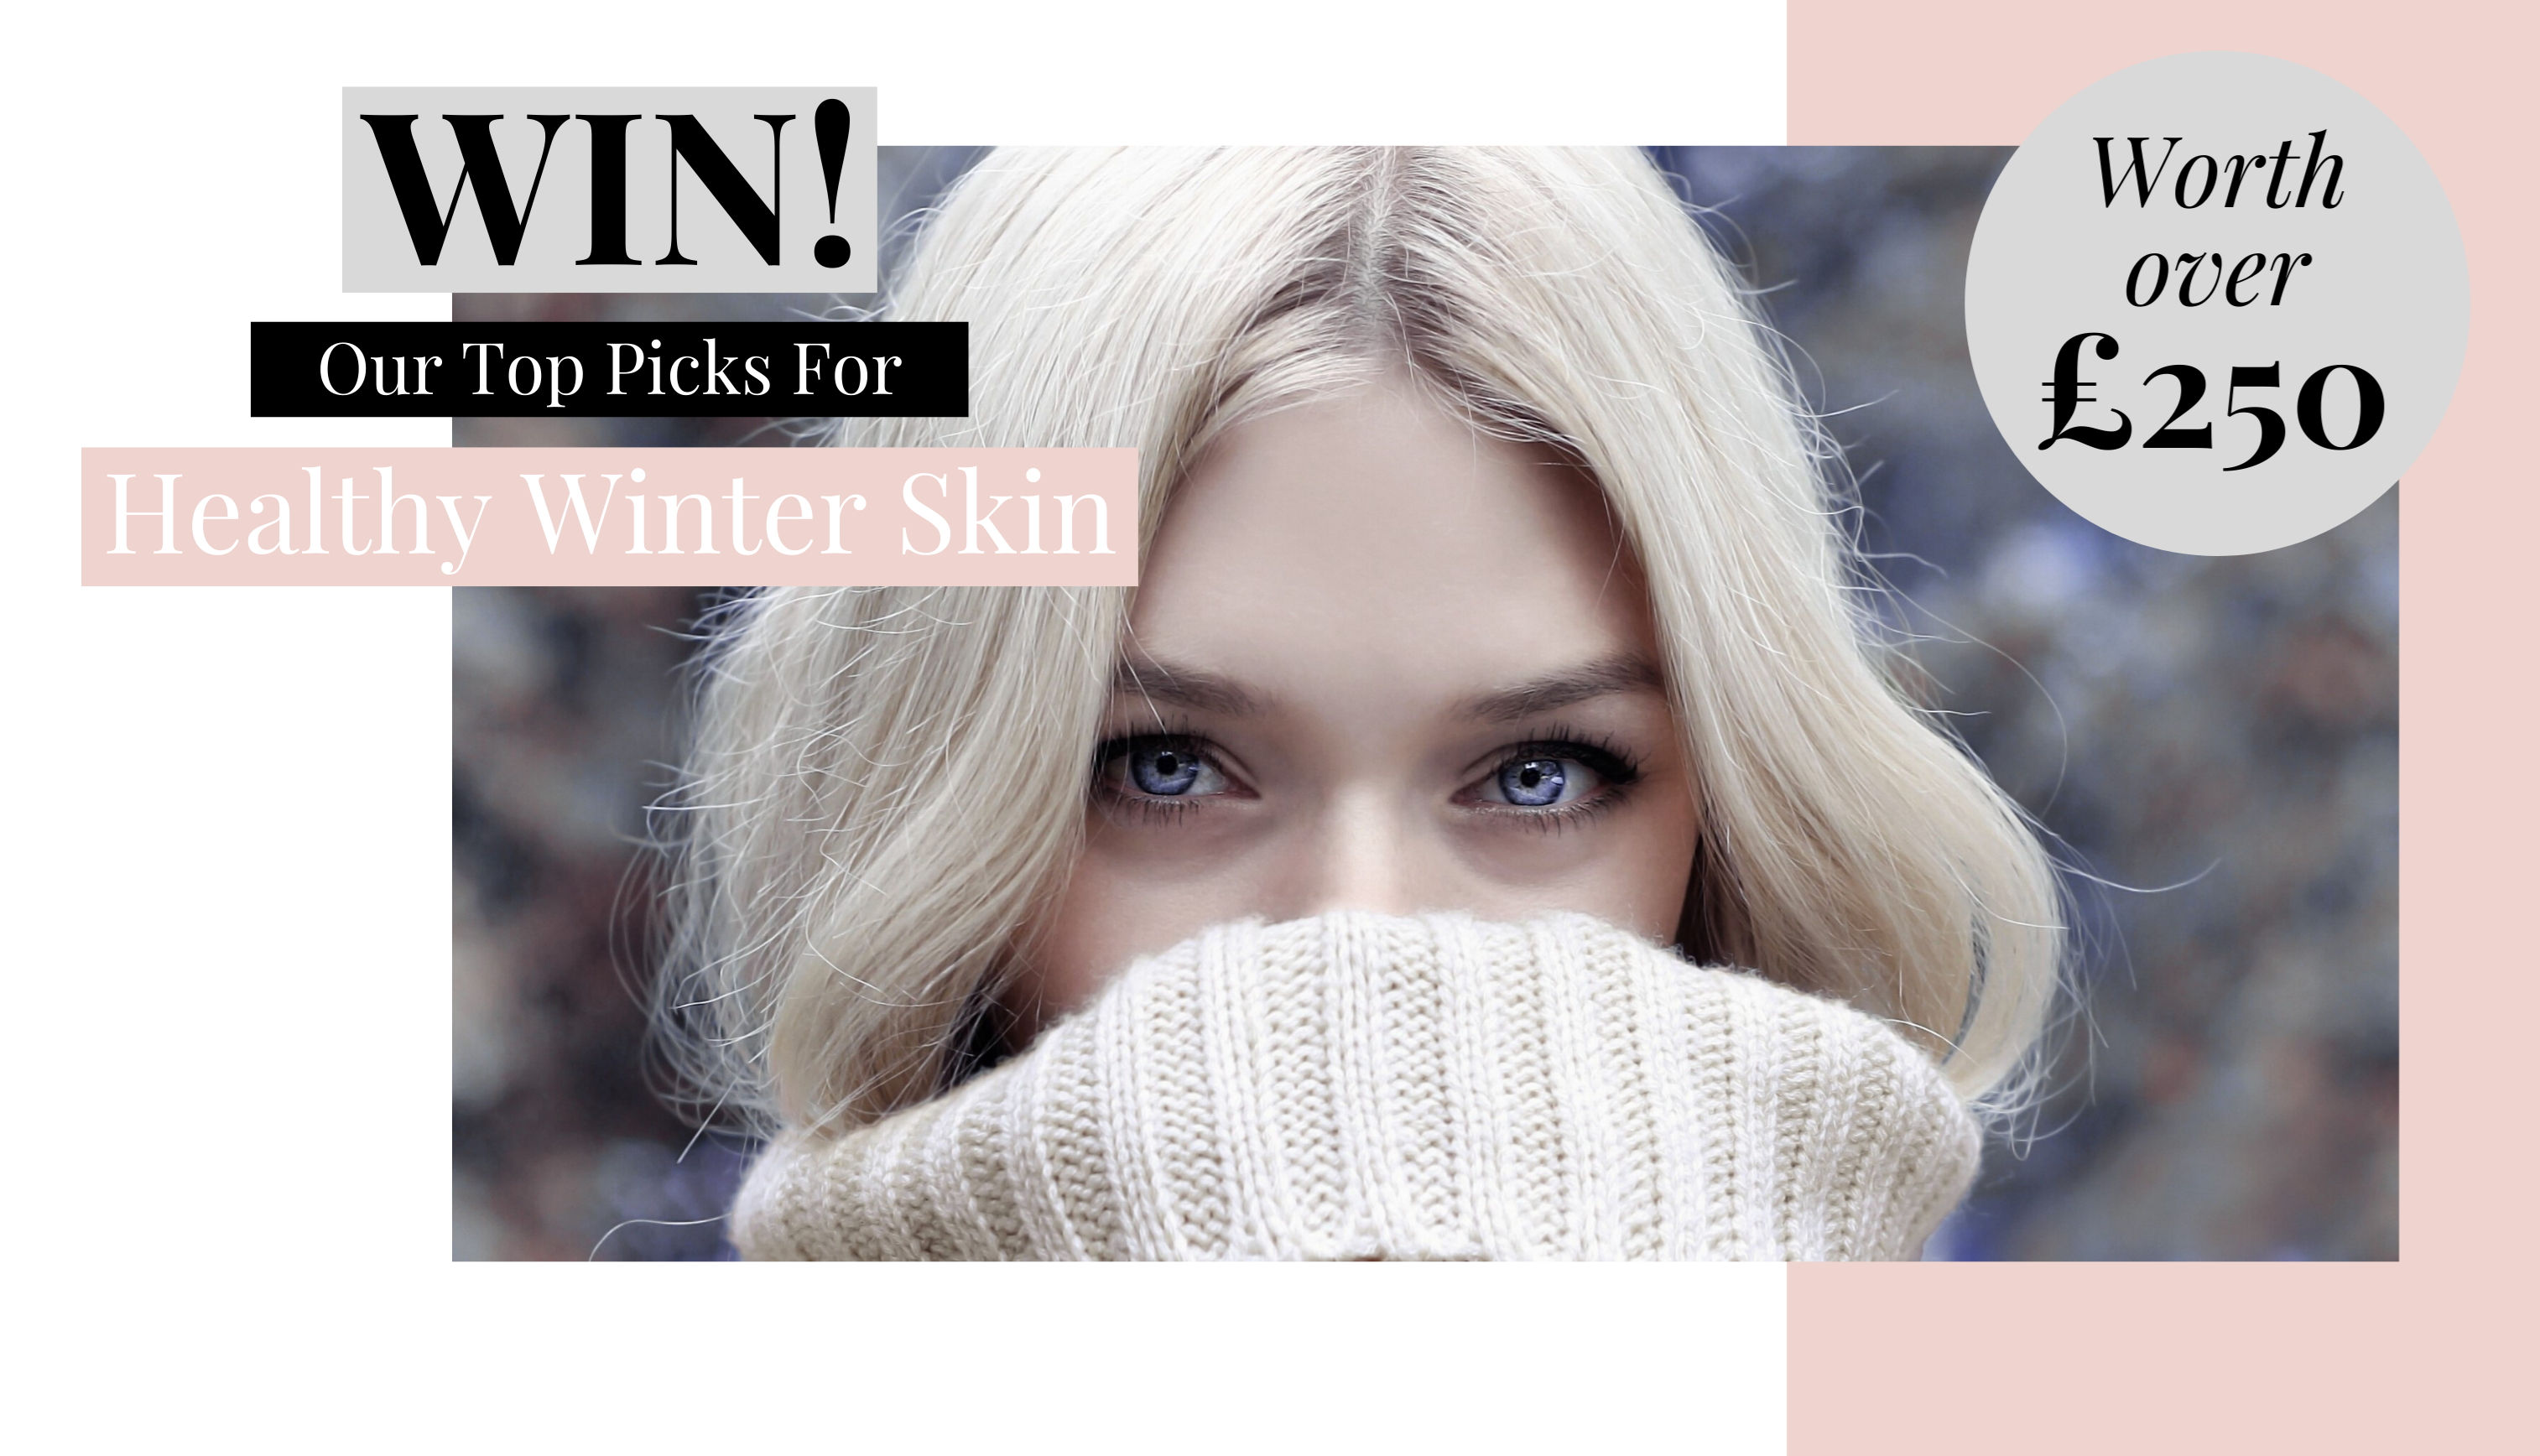 Our Top Picks from Aelia Duty Free for Healthy Winter Skin